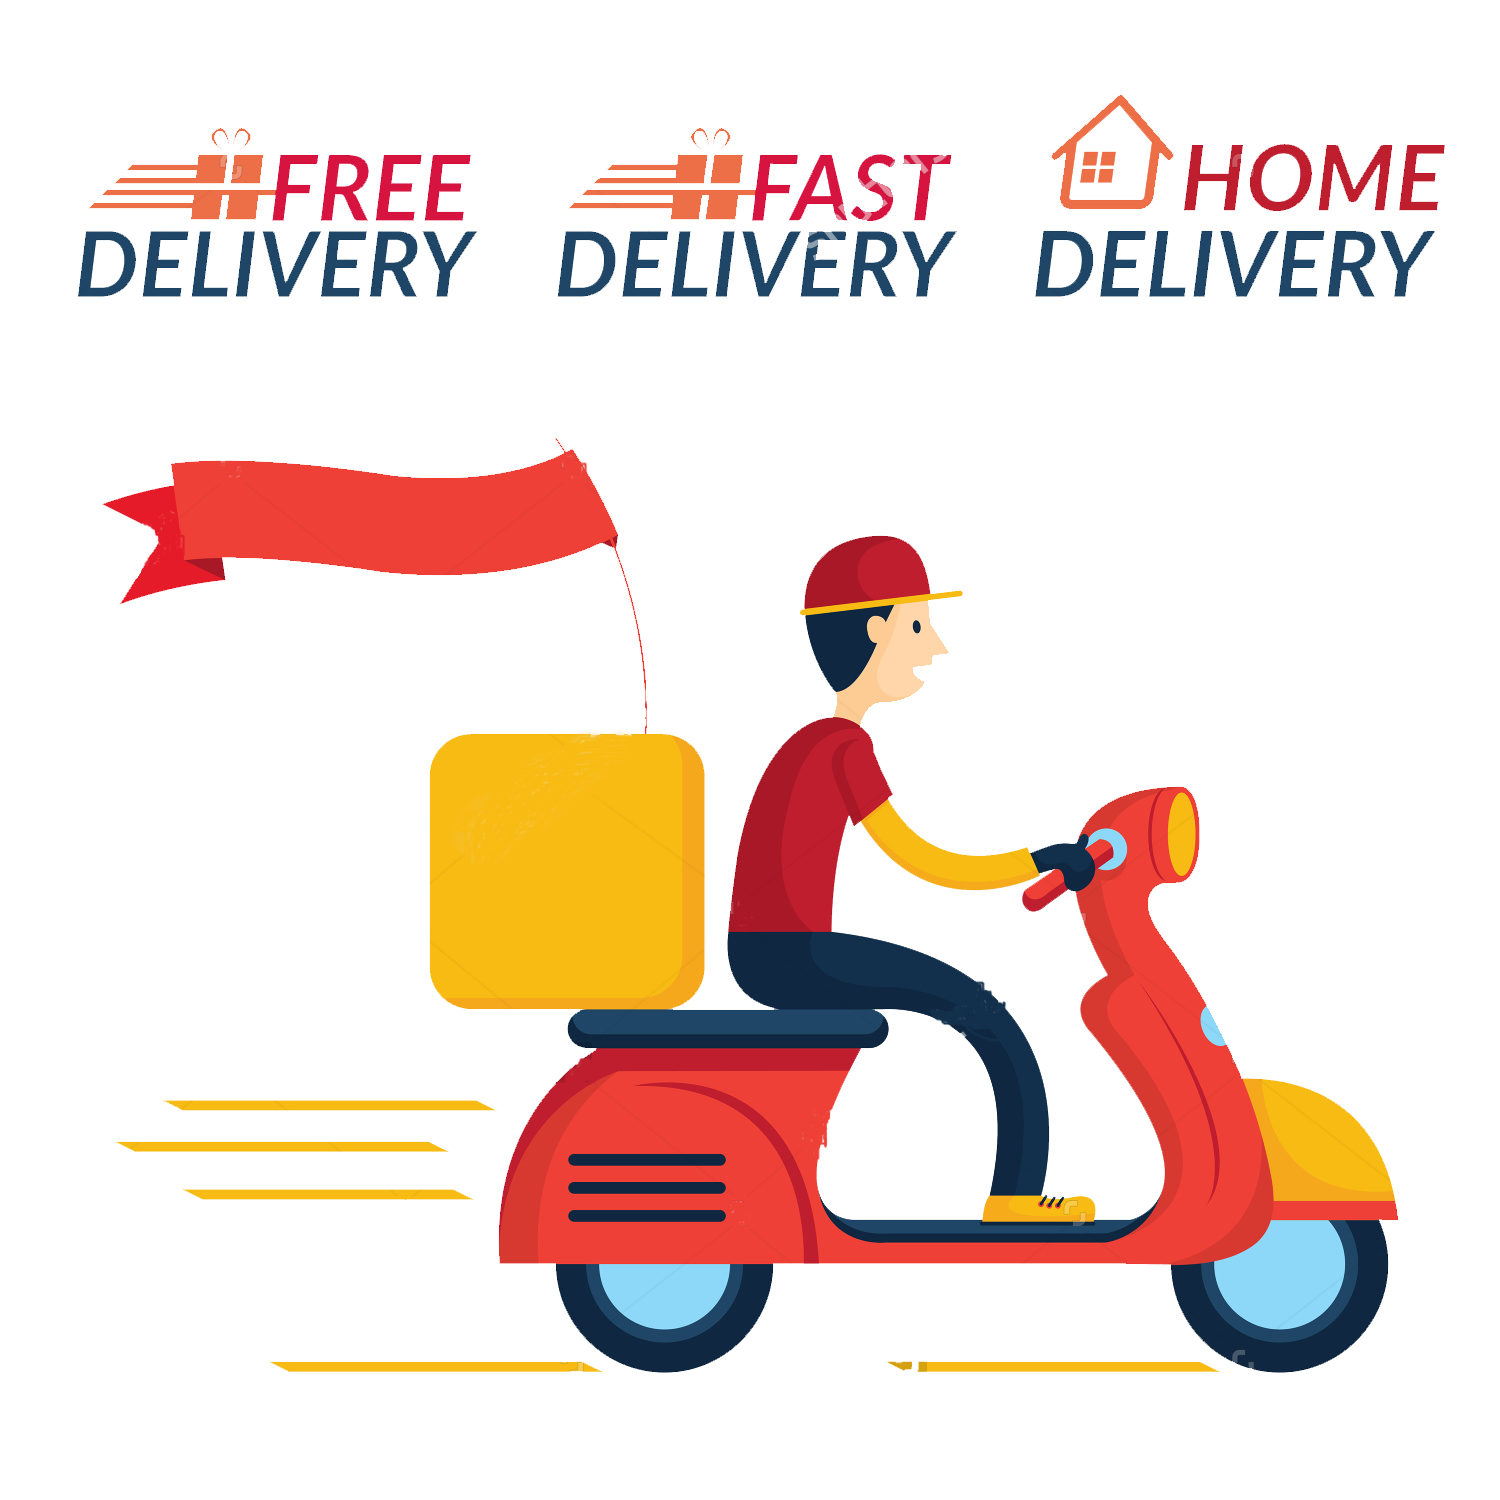 Scooter clipart delivery scooter. Pizza clip art transprent